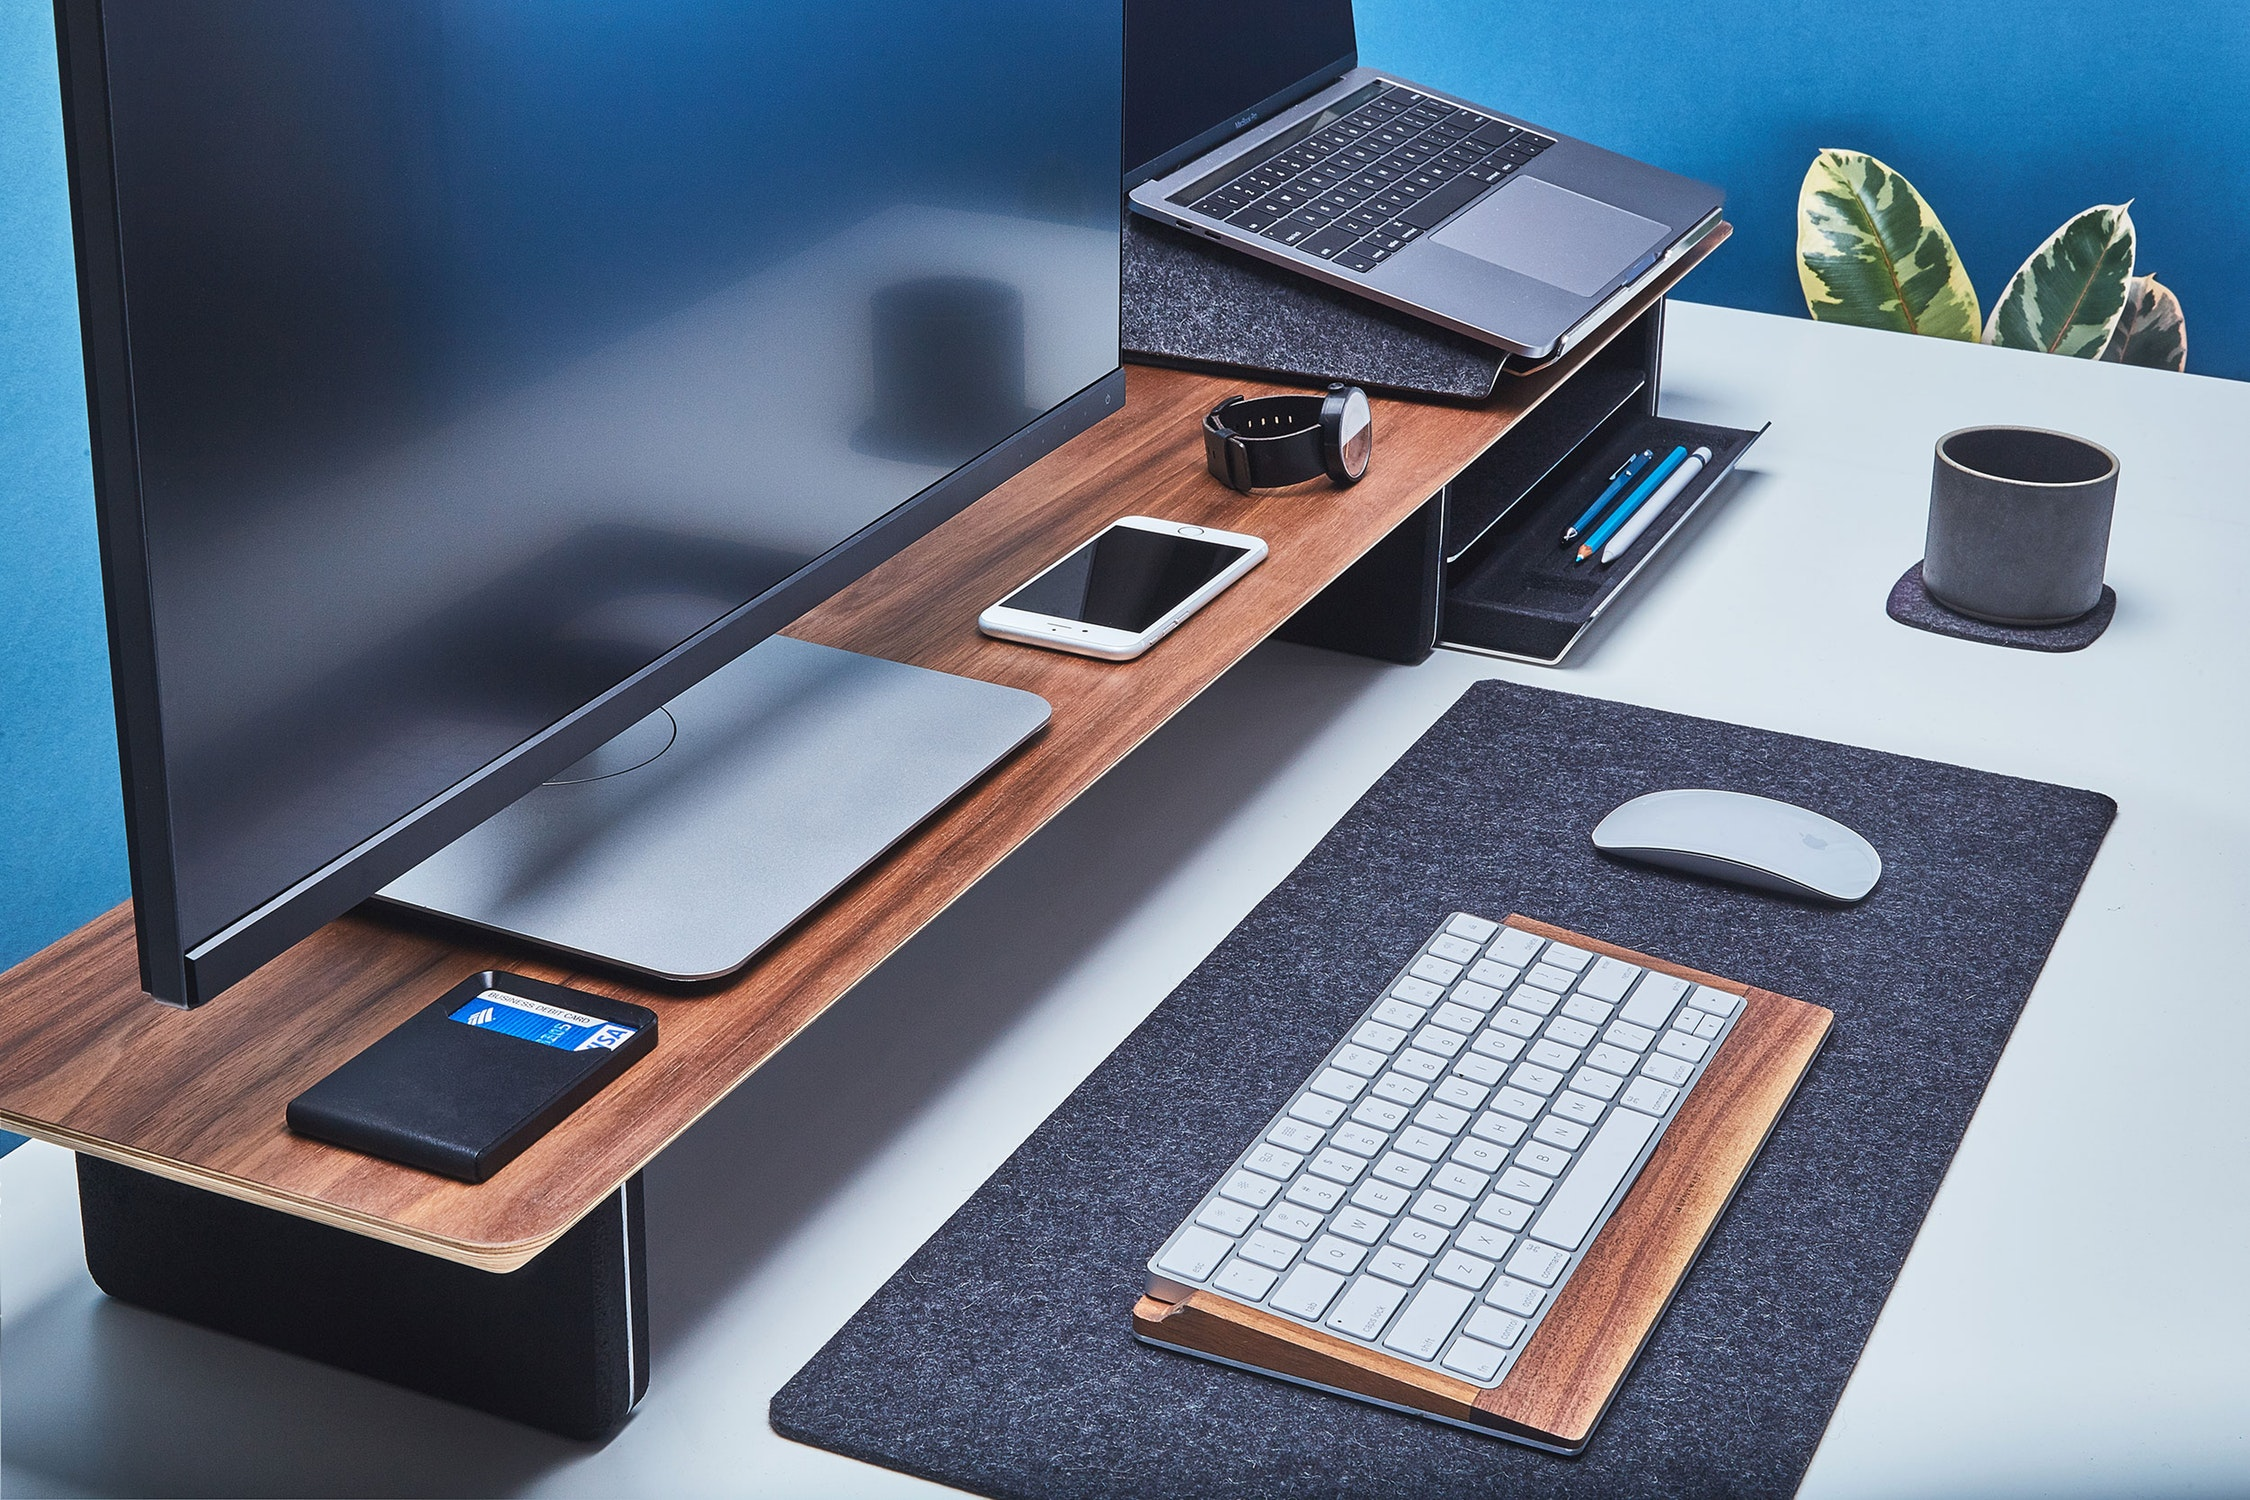 Grovemade: Introducing the Desk Shelf System for your workspace